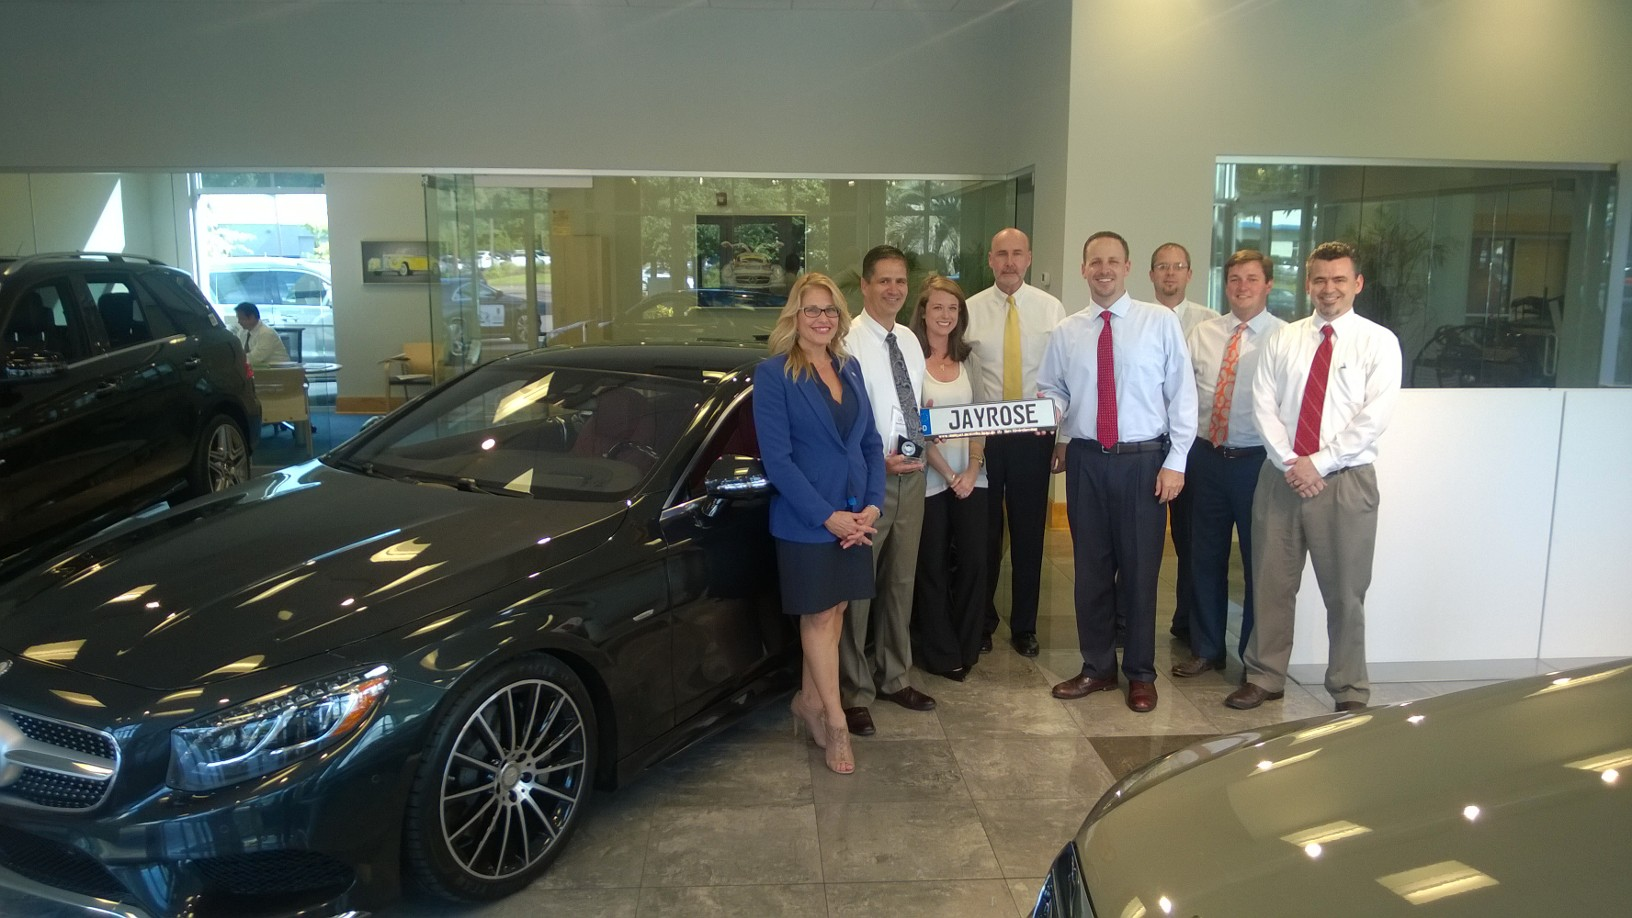 Baker motor company recognizes jay rose as top sales for Baker motor company land rover